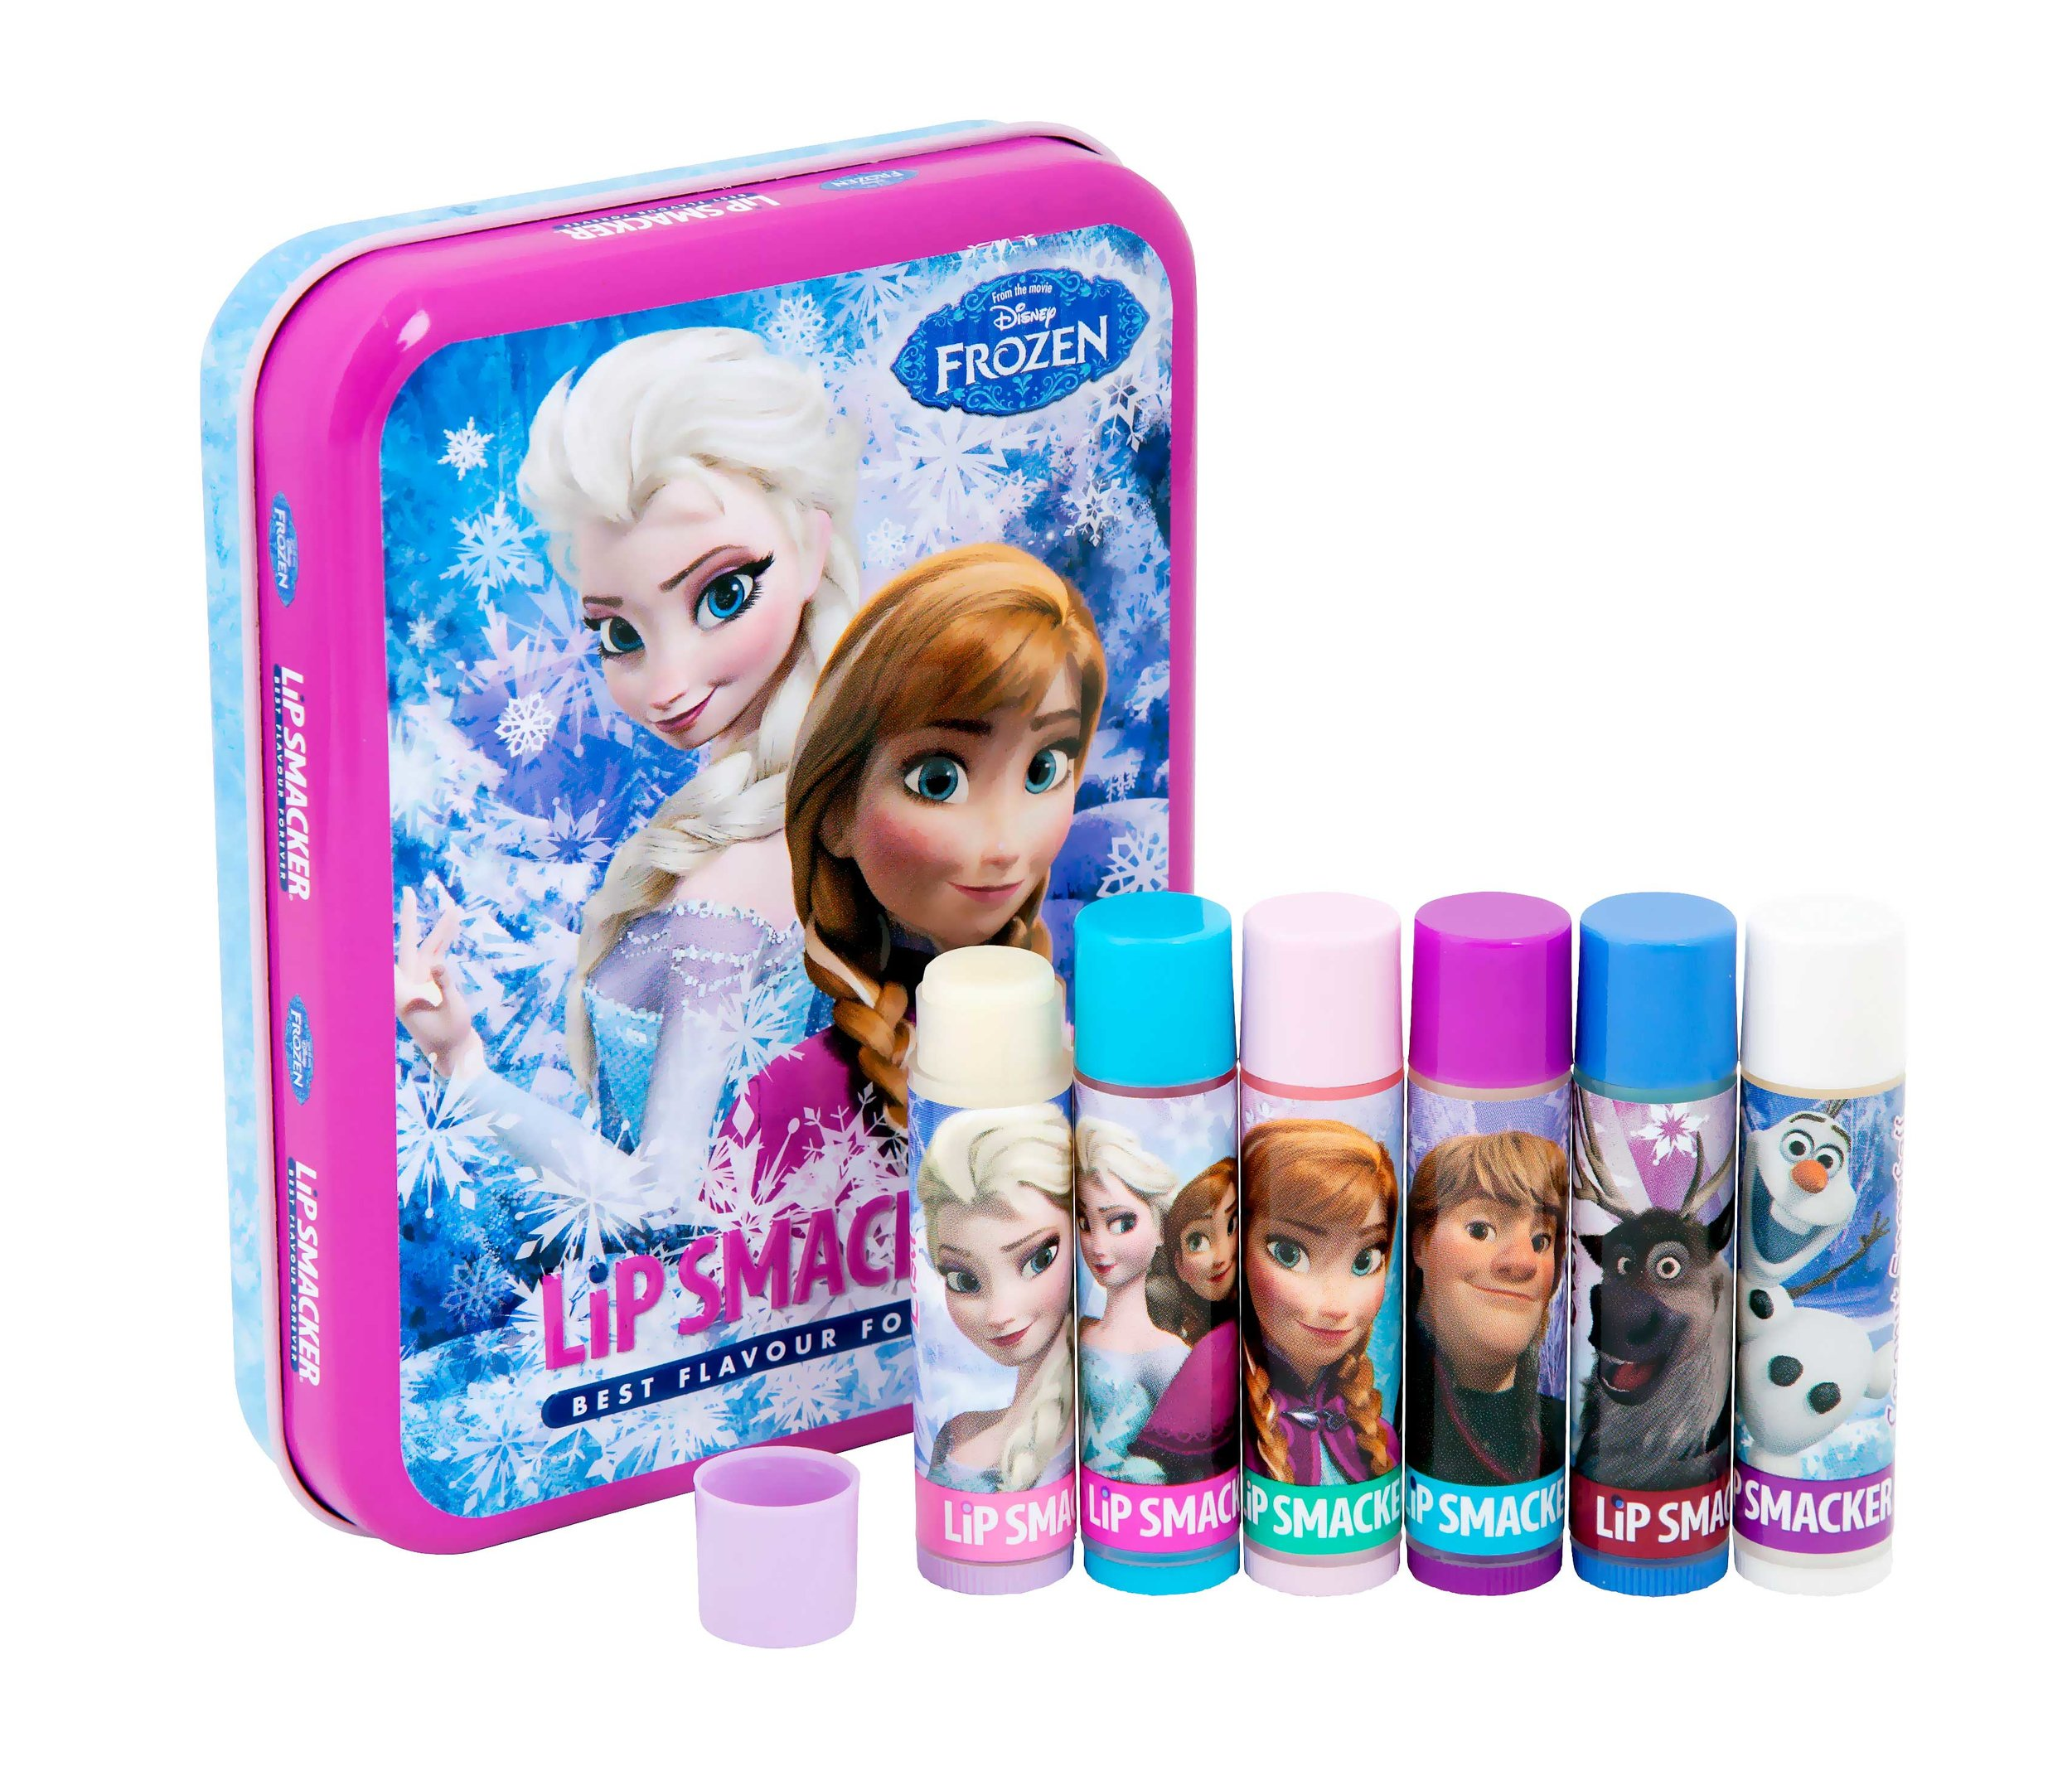 lip-smacker_frozen-set_scorpio-worldwide_travel-retail-distributor